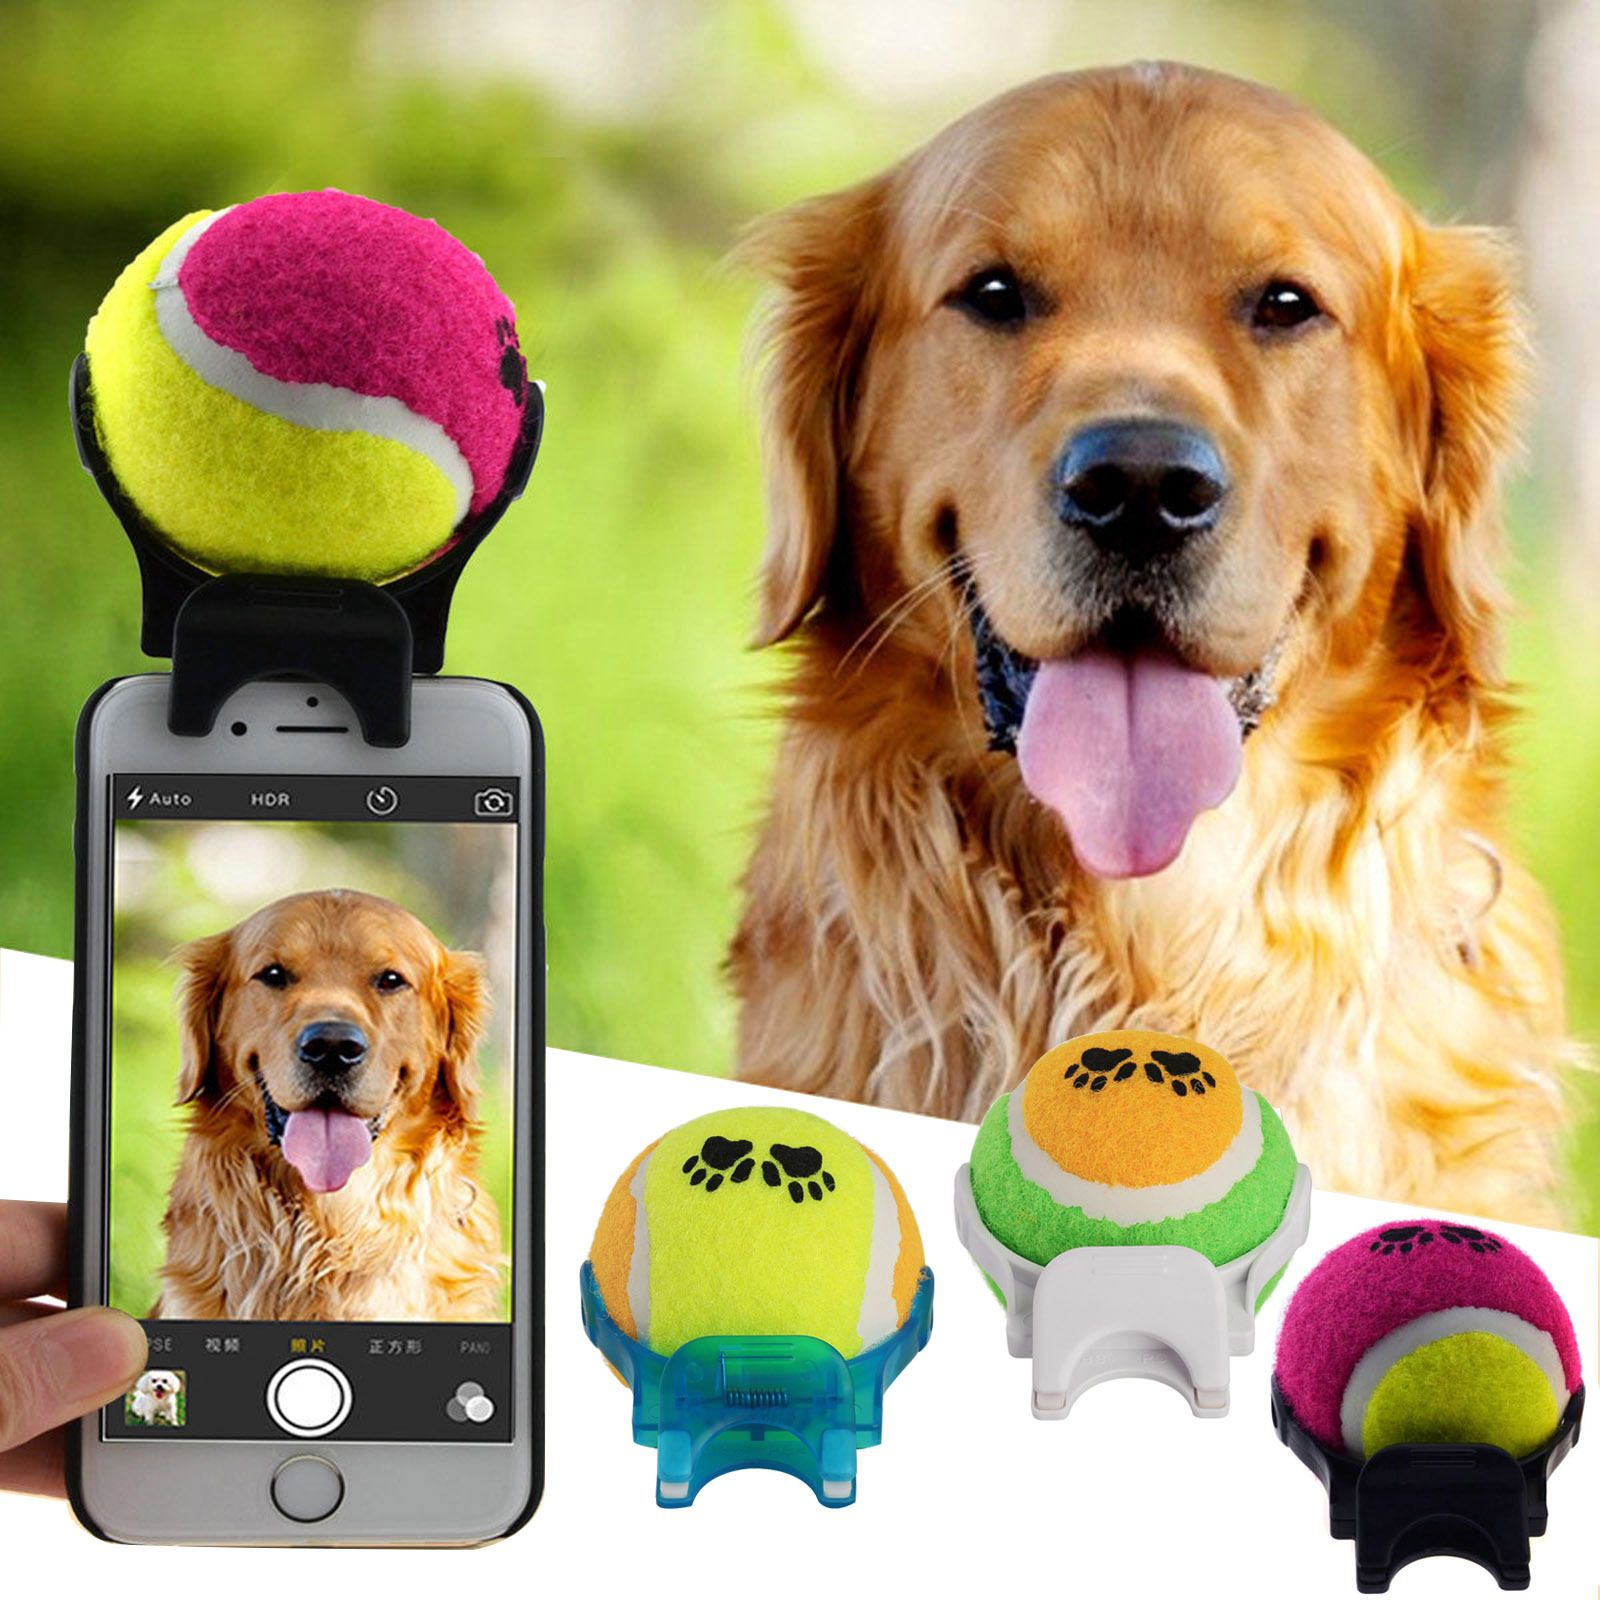 An ingenious accessory for the perfect selfie with a dog